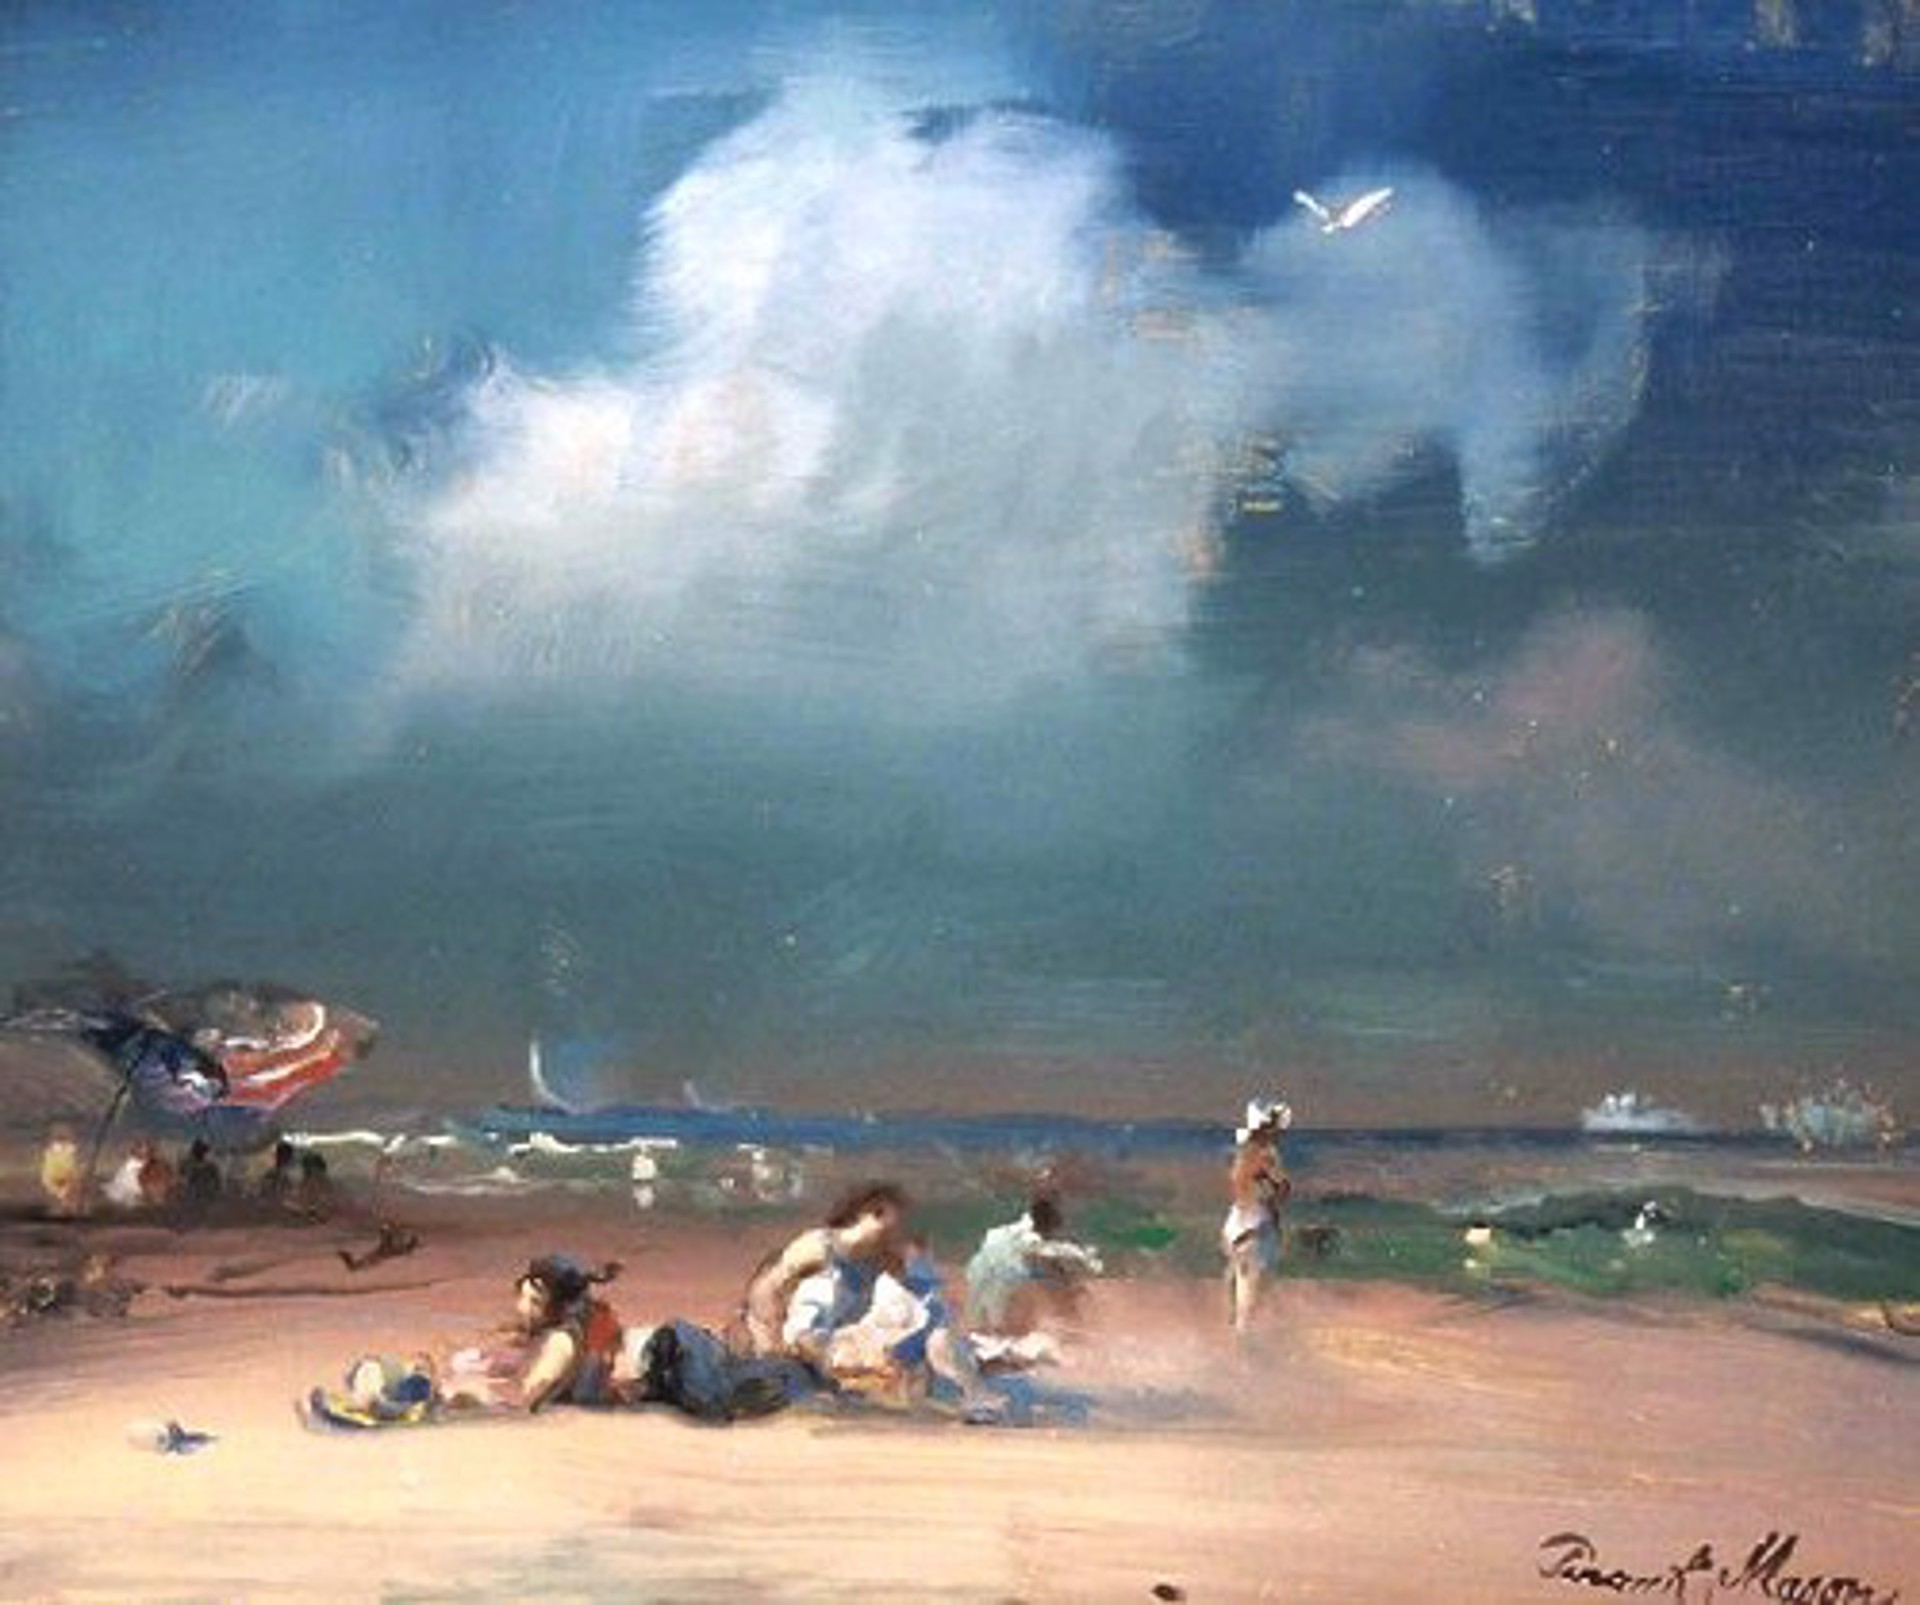 The Bathers, Block Island by Frank Mason (1921 - 2009)